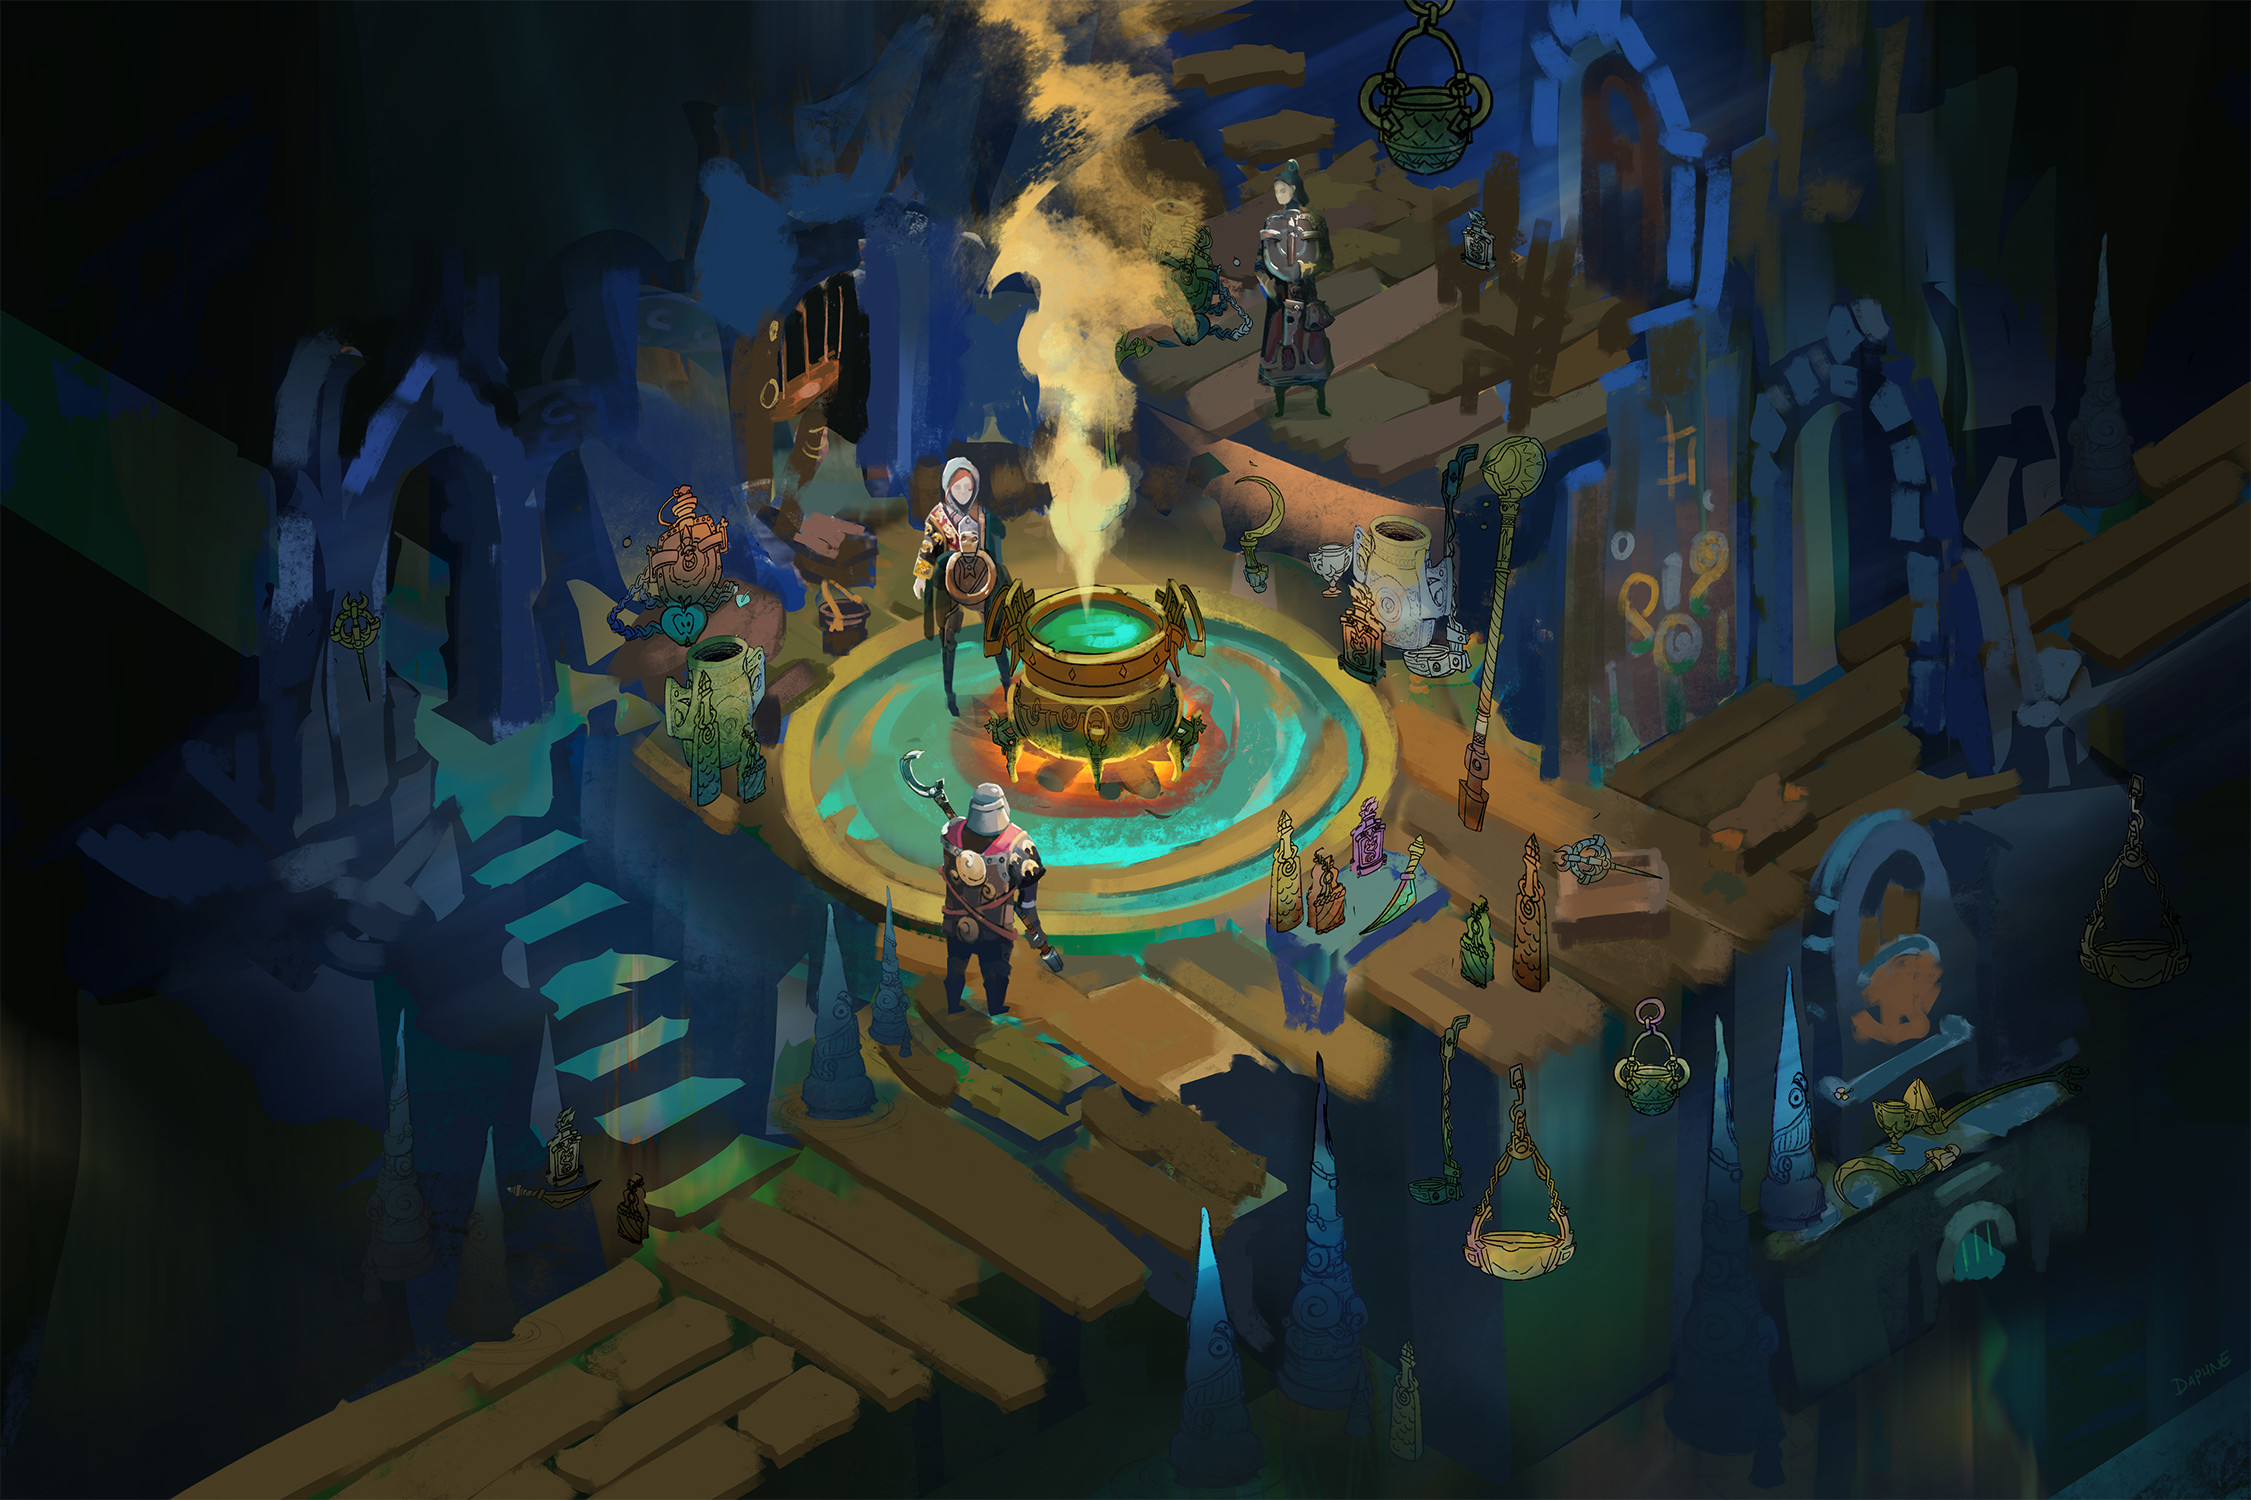 The Potion Seller's Dungeon Shop